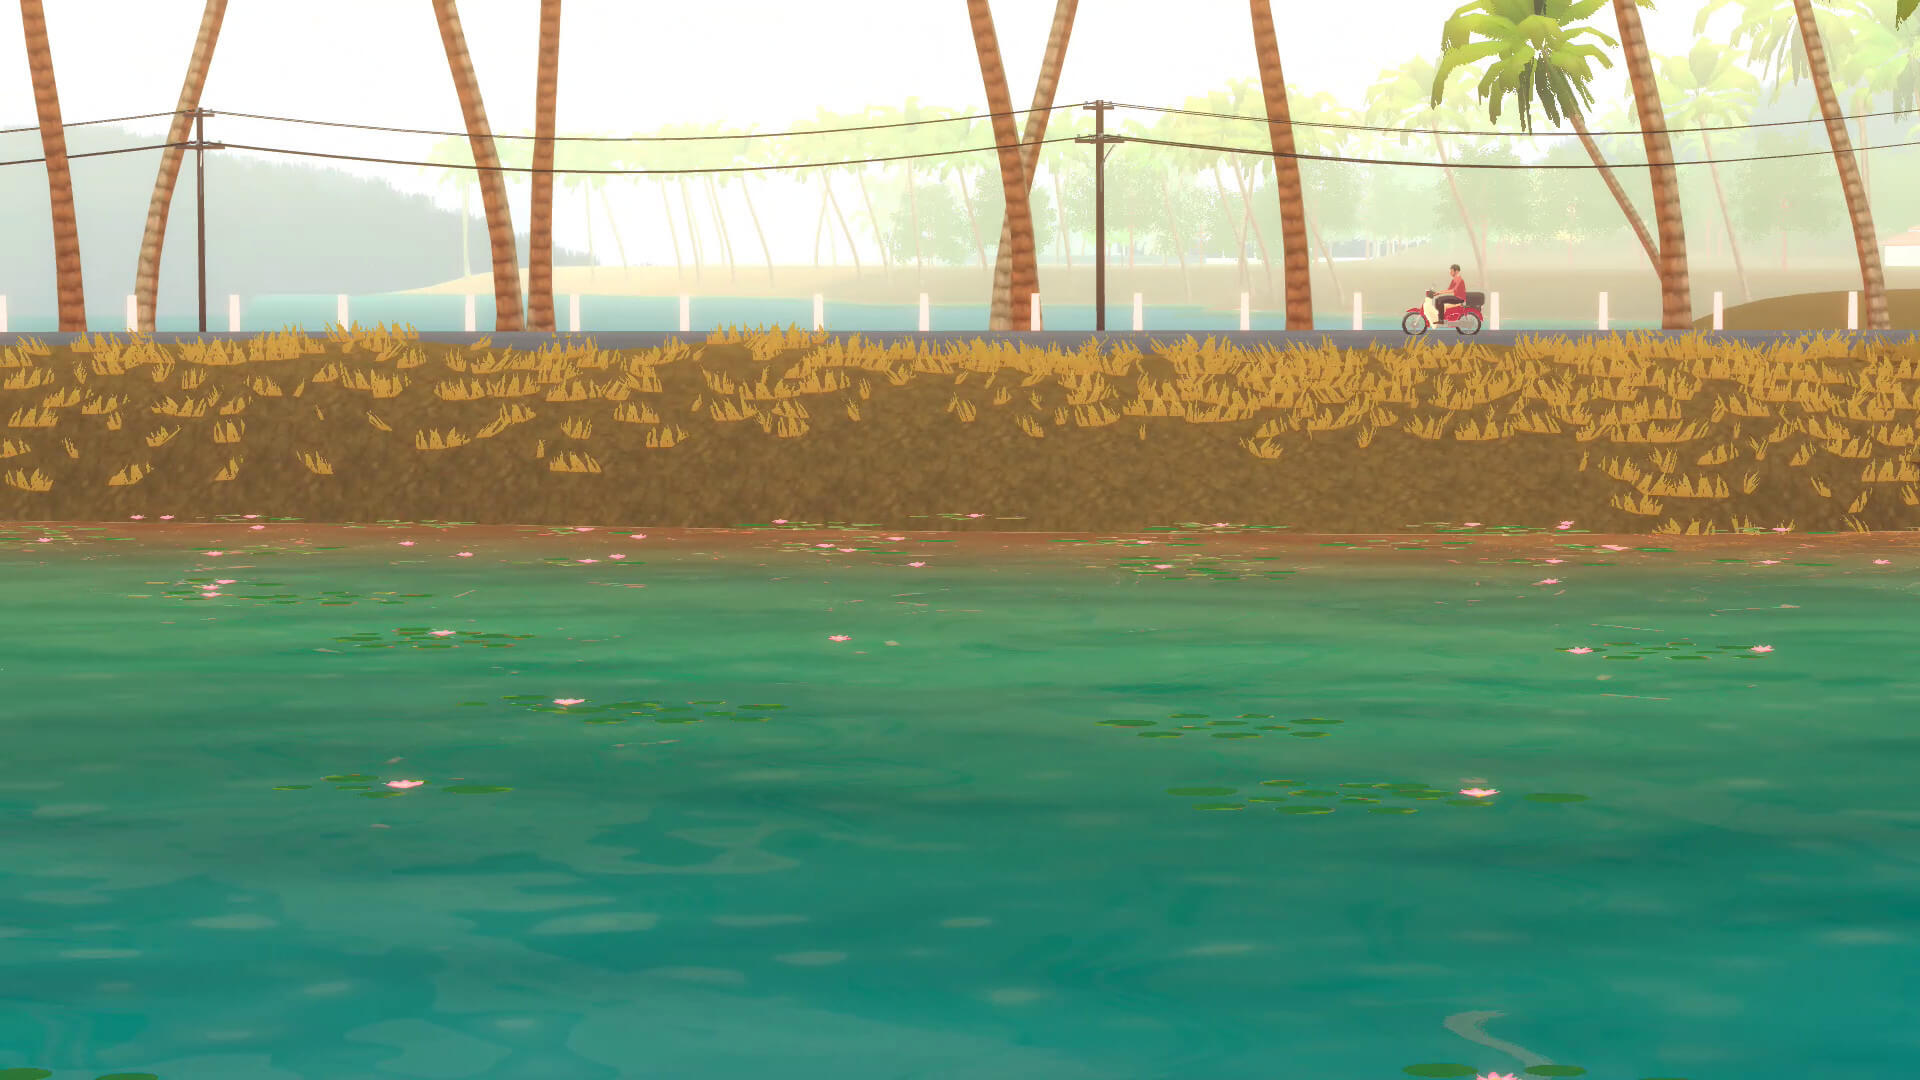 Slice-of-Life Narrative Game Forgotten Fields Launches Today